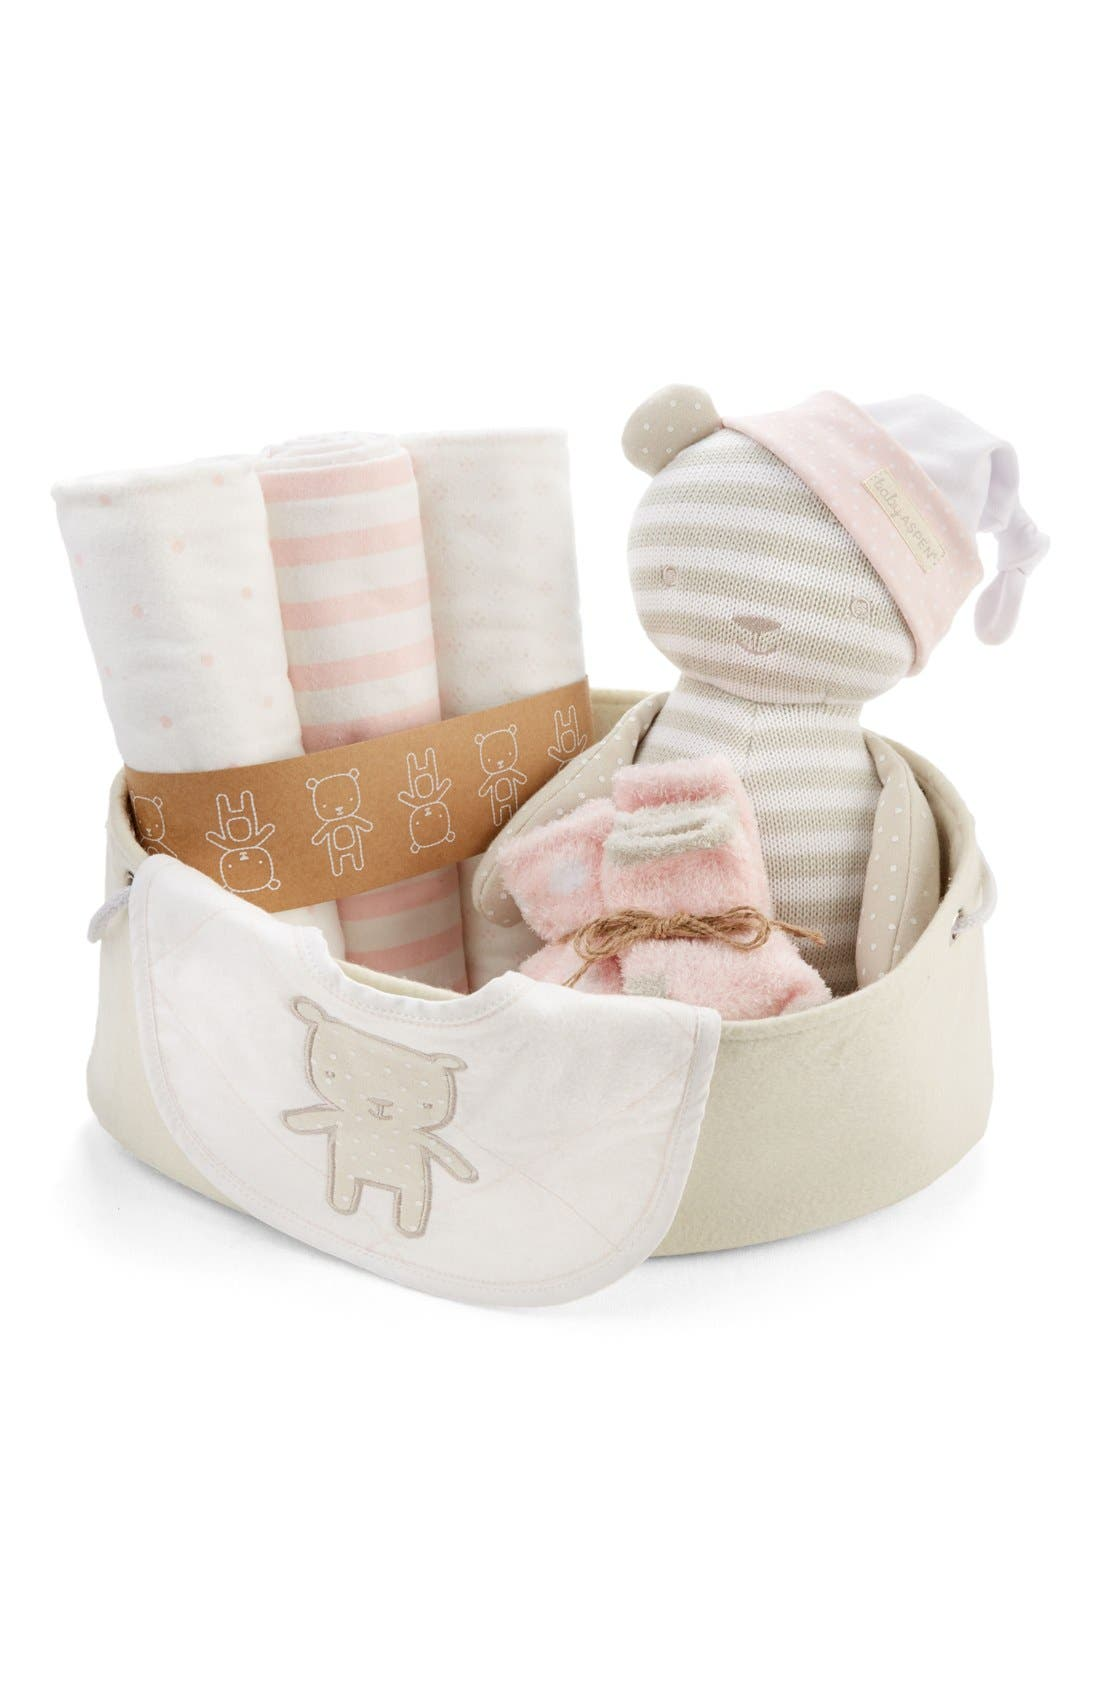 Baby Aspen Beary Special 10-Piece Gift Set (Baby)